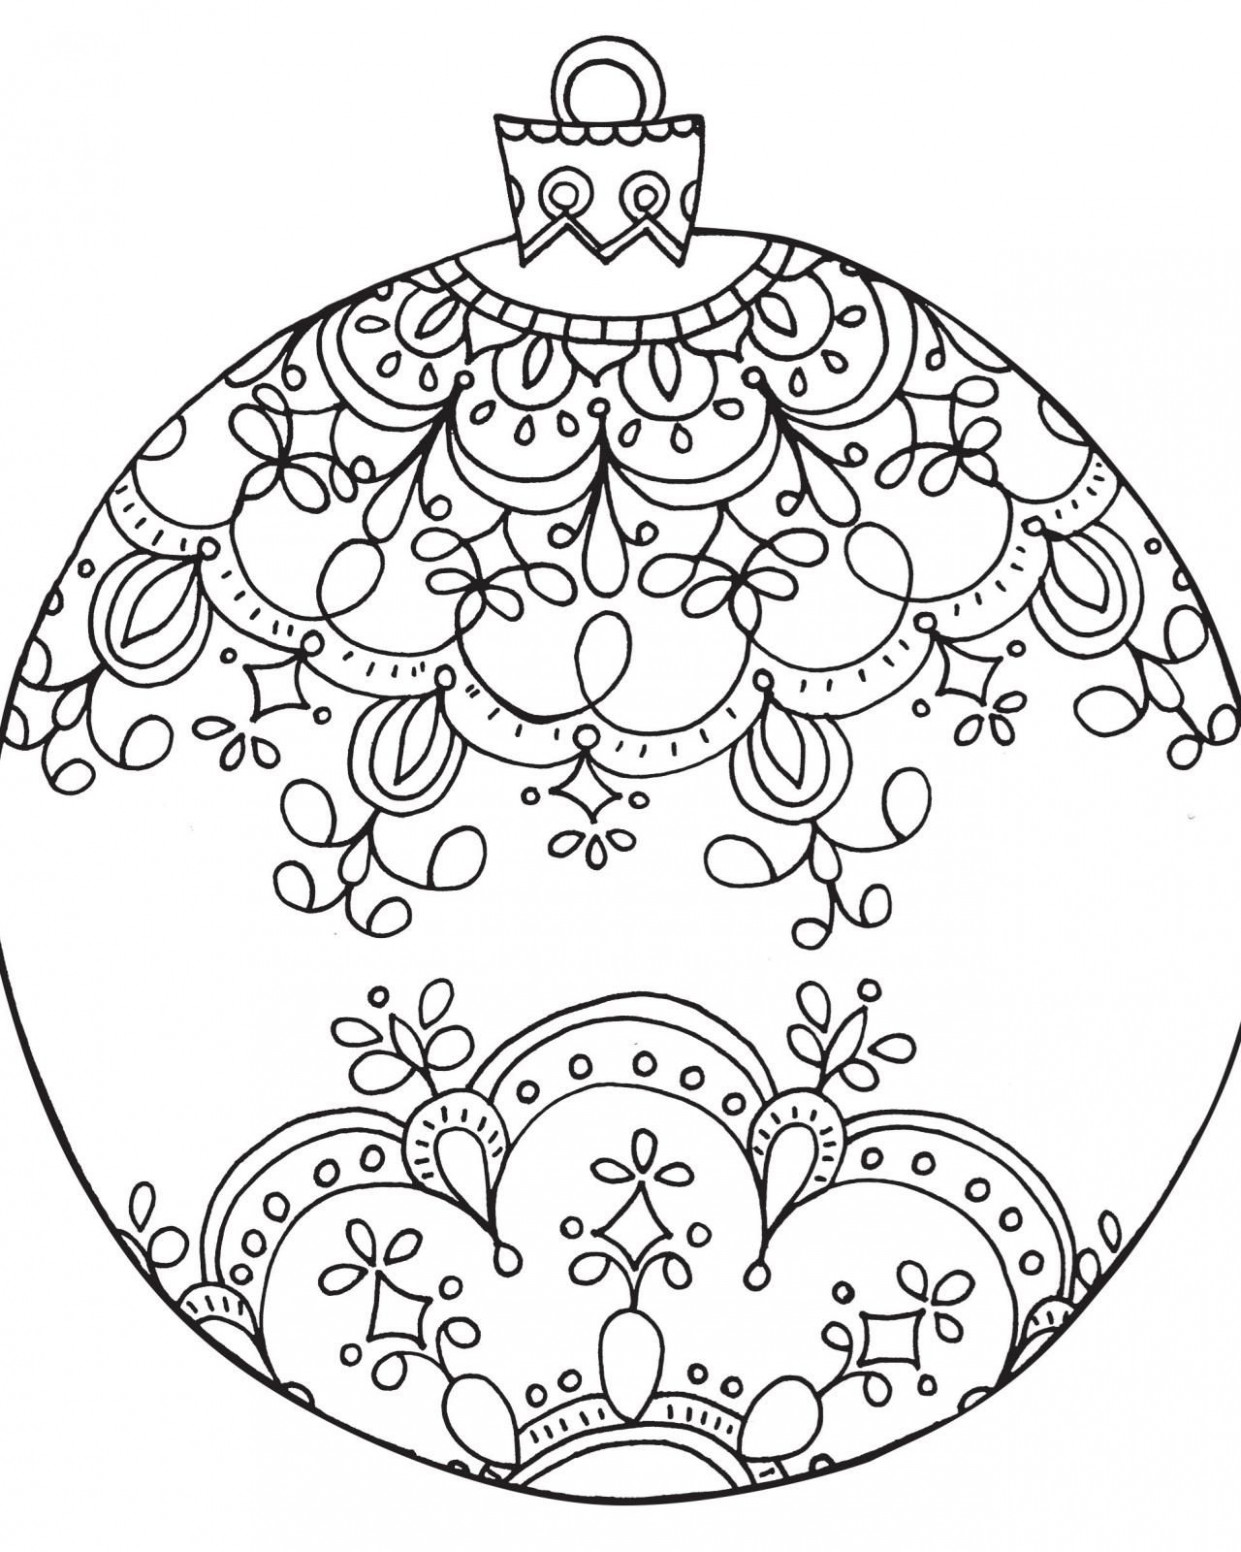 Free Printable Coloring Pages for Adults | Quilling | Mandalas ...